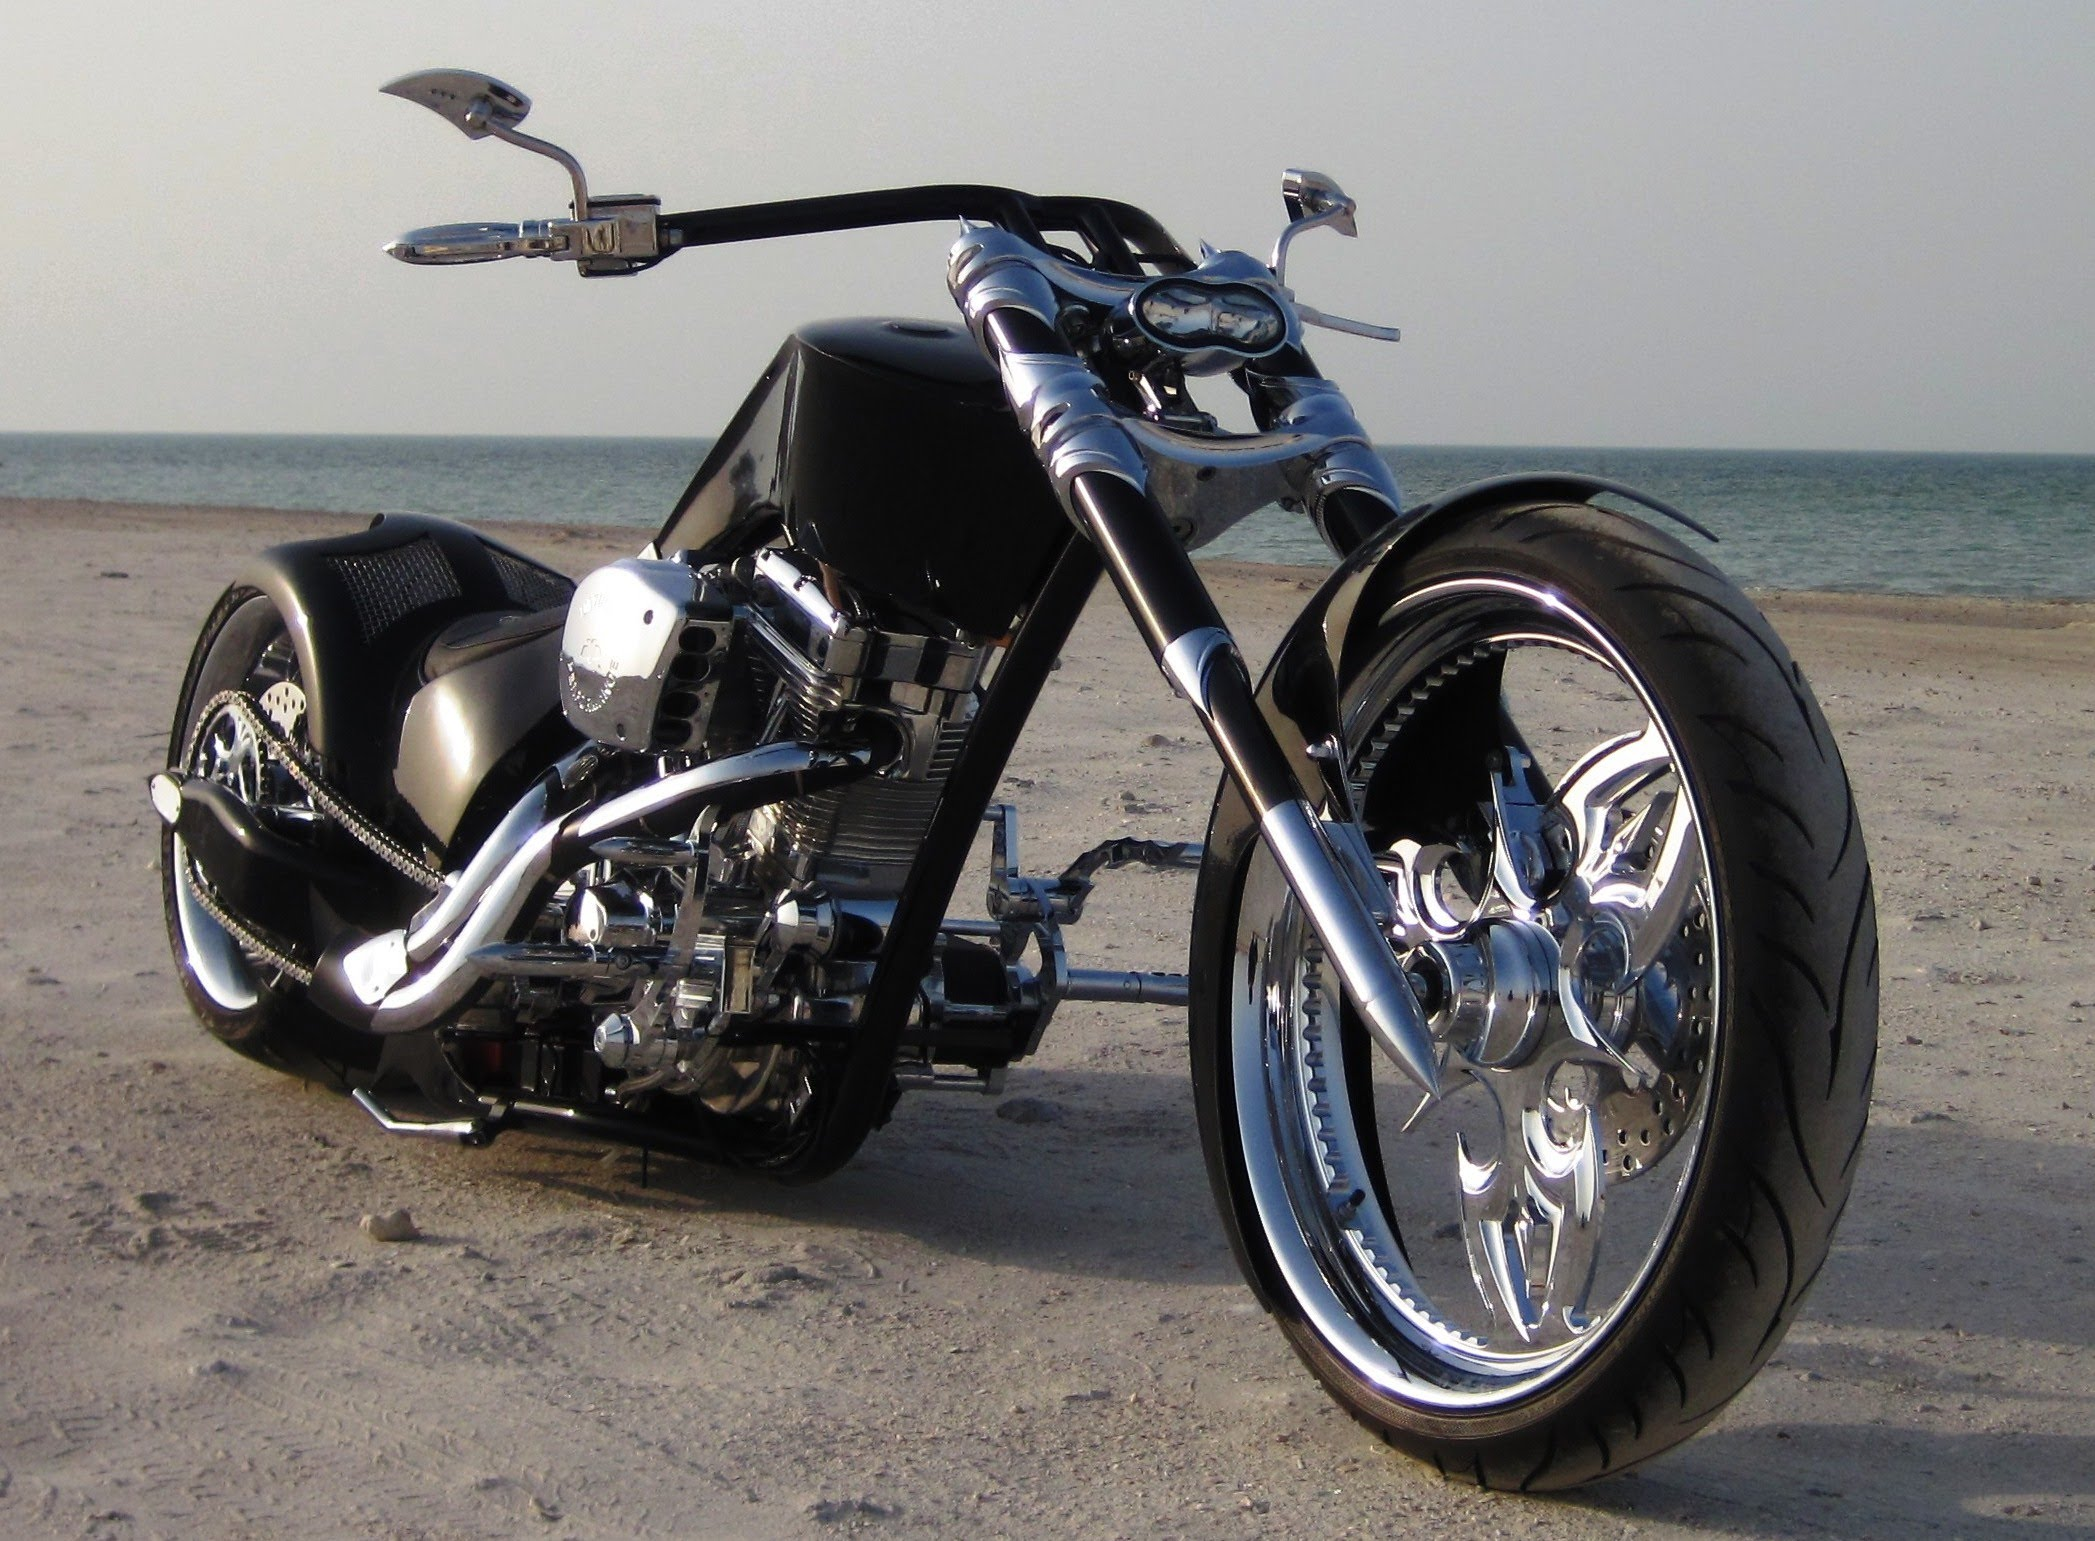 CUSTOM CHOPPER motorbike tuning bike hot rod rods   e